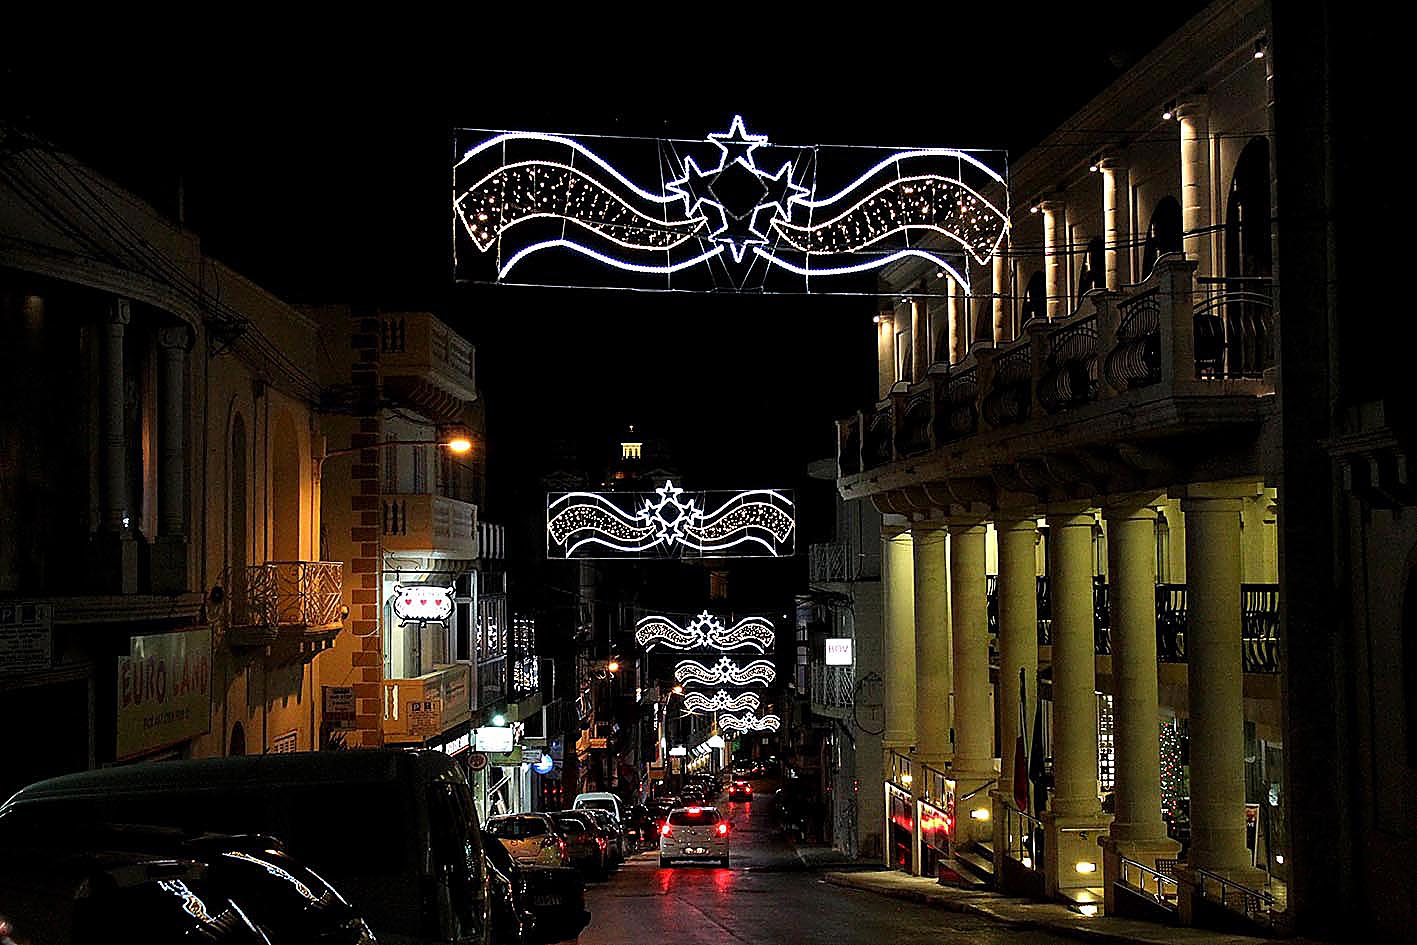 Initiatives by the Mellieħa Local Council during the Festive Season